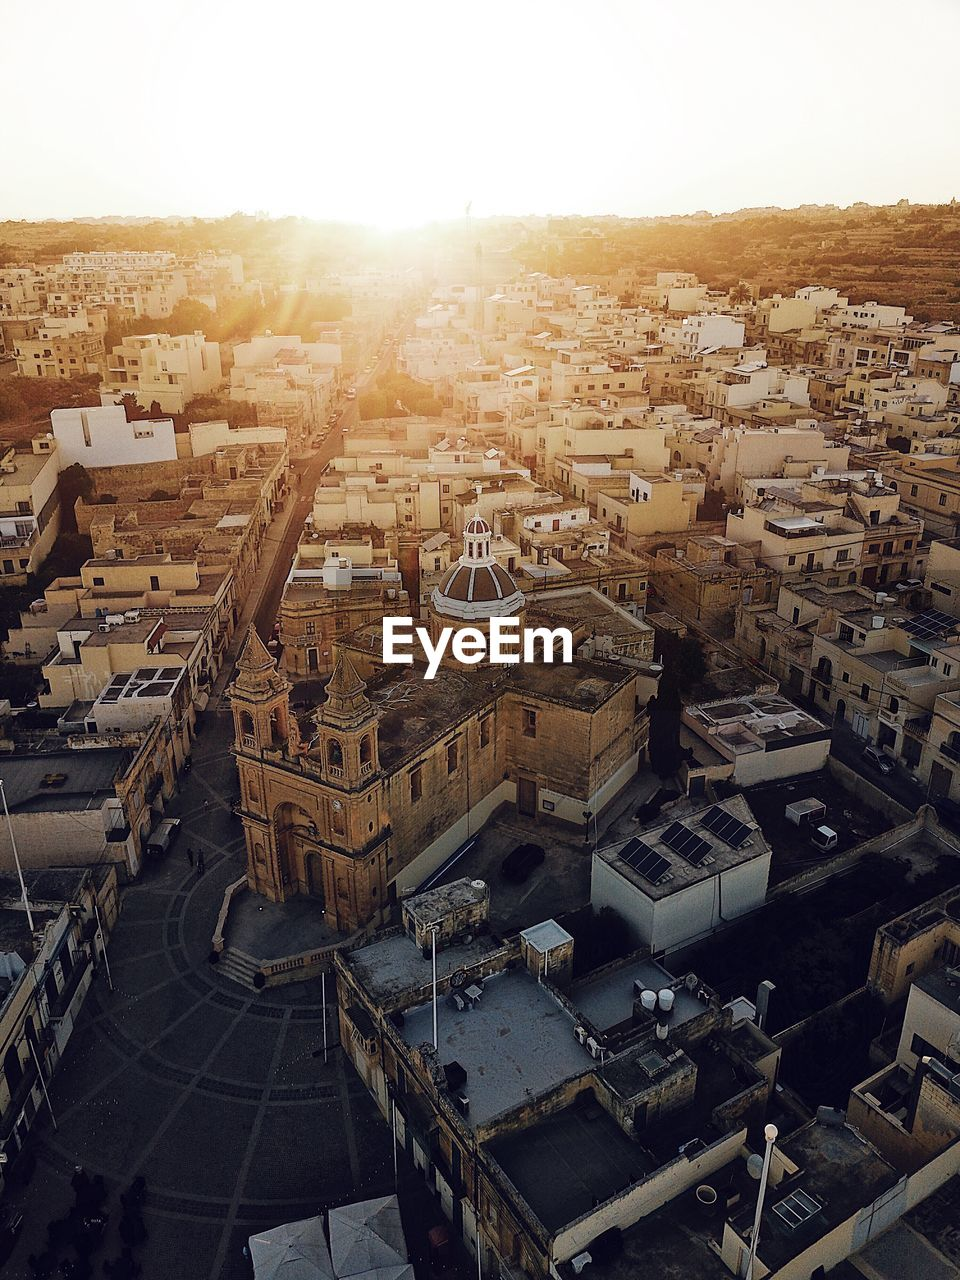 High Angle View Of Cityscape Against Clear Sky During Sunset